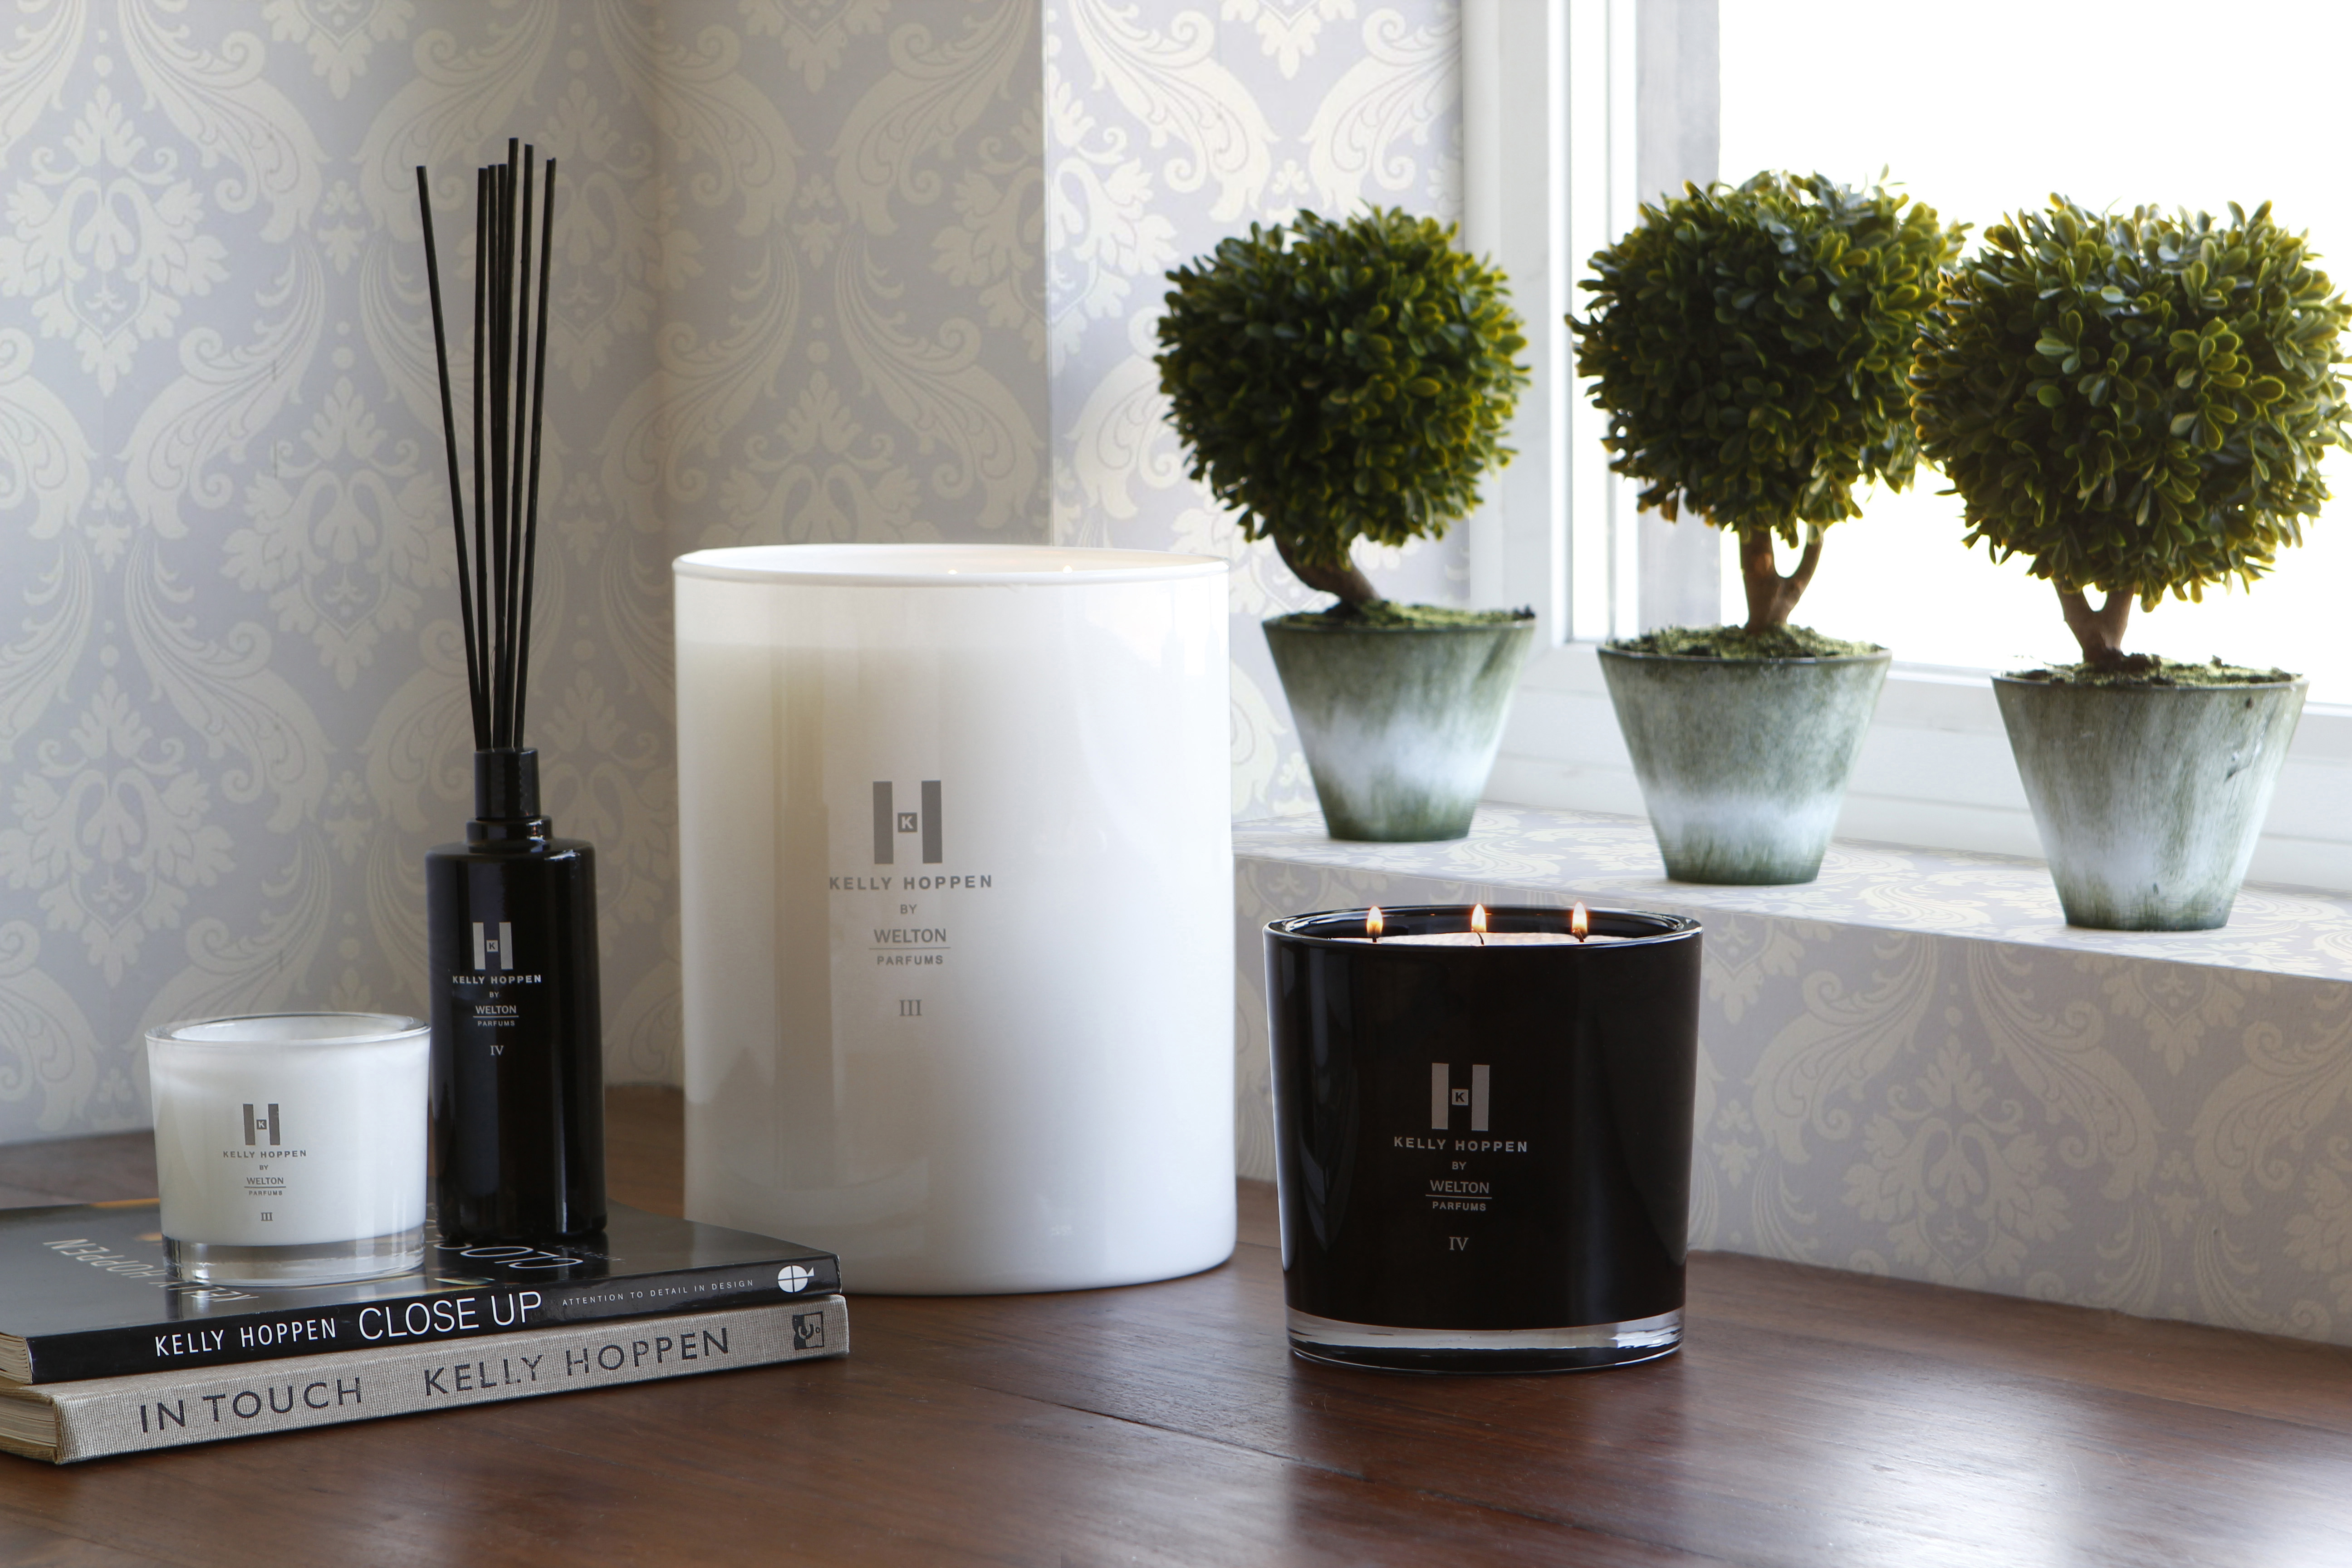 Master The Art Of Home Fragrance